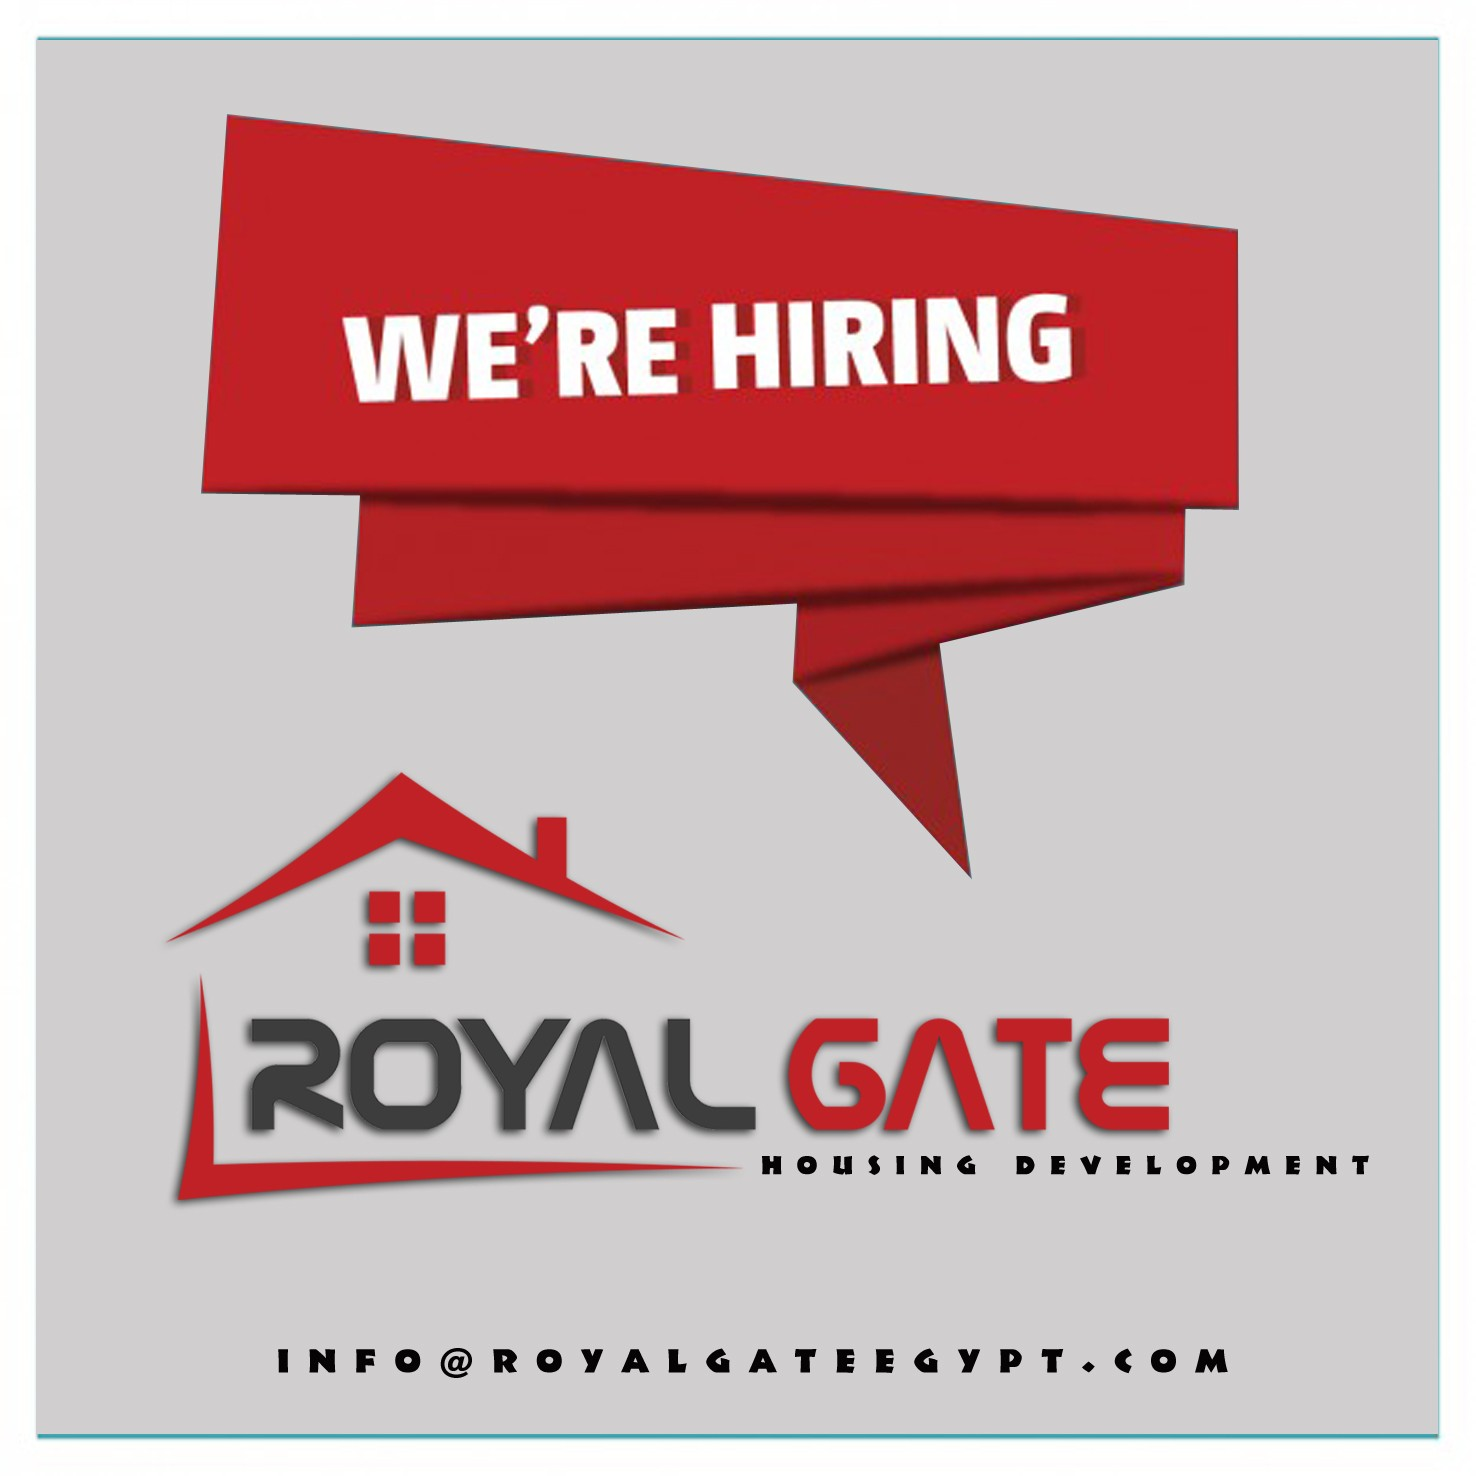 Royal Gate For Housing Development